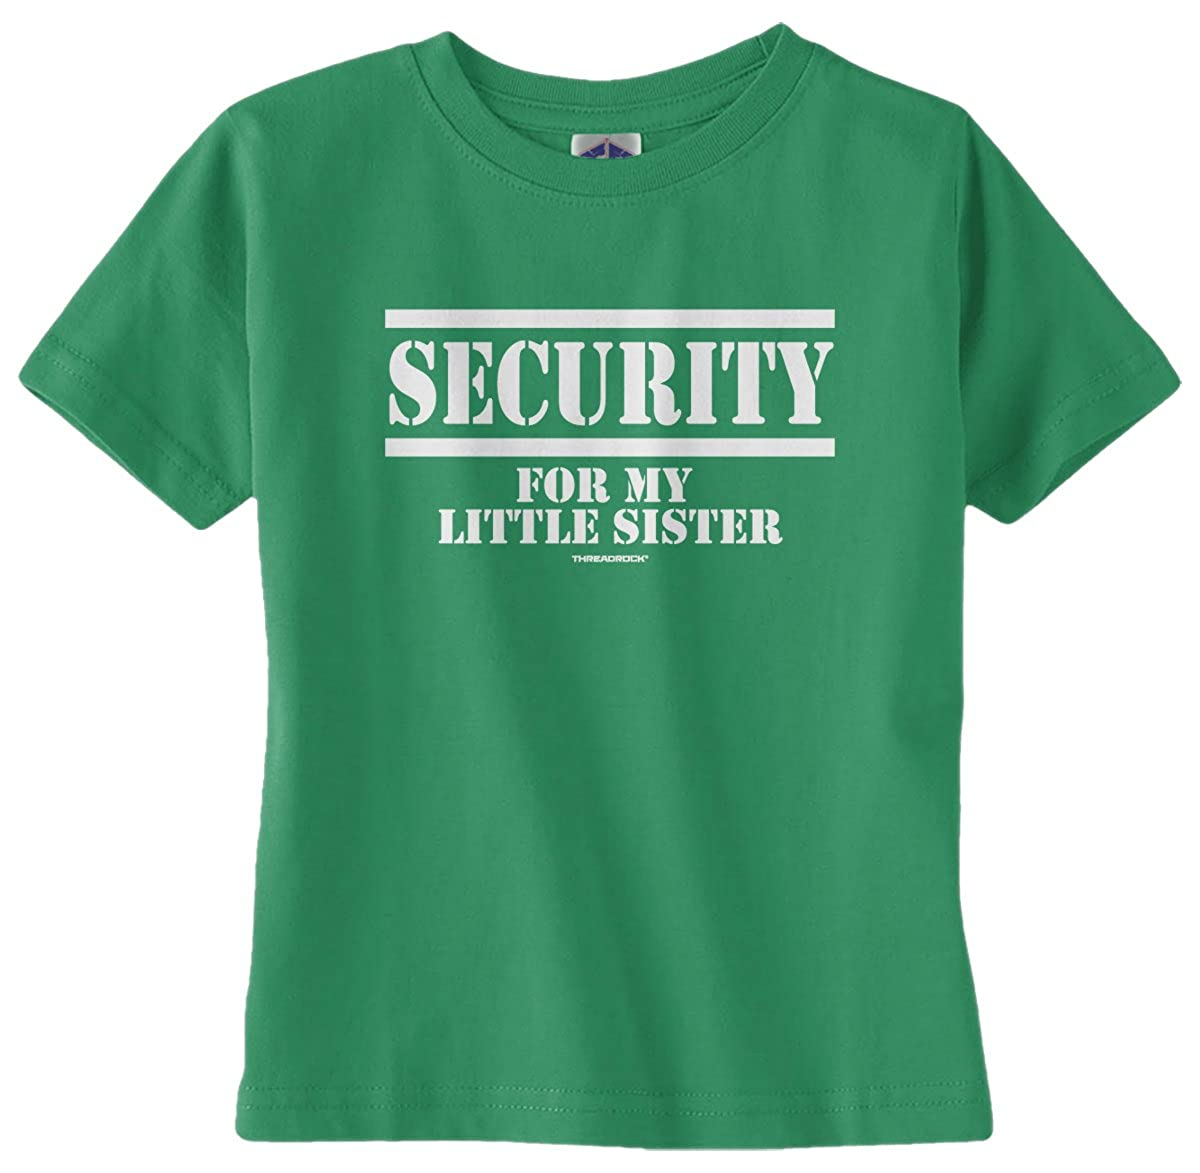 Threadrock Unisex Baby SECURITY For My Little Sister Infant T-Shirt